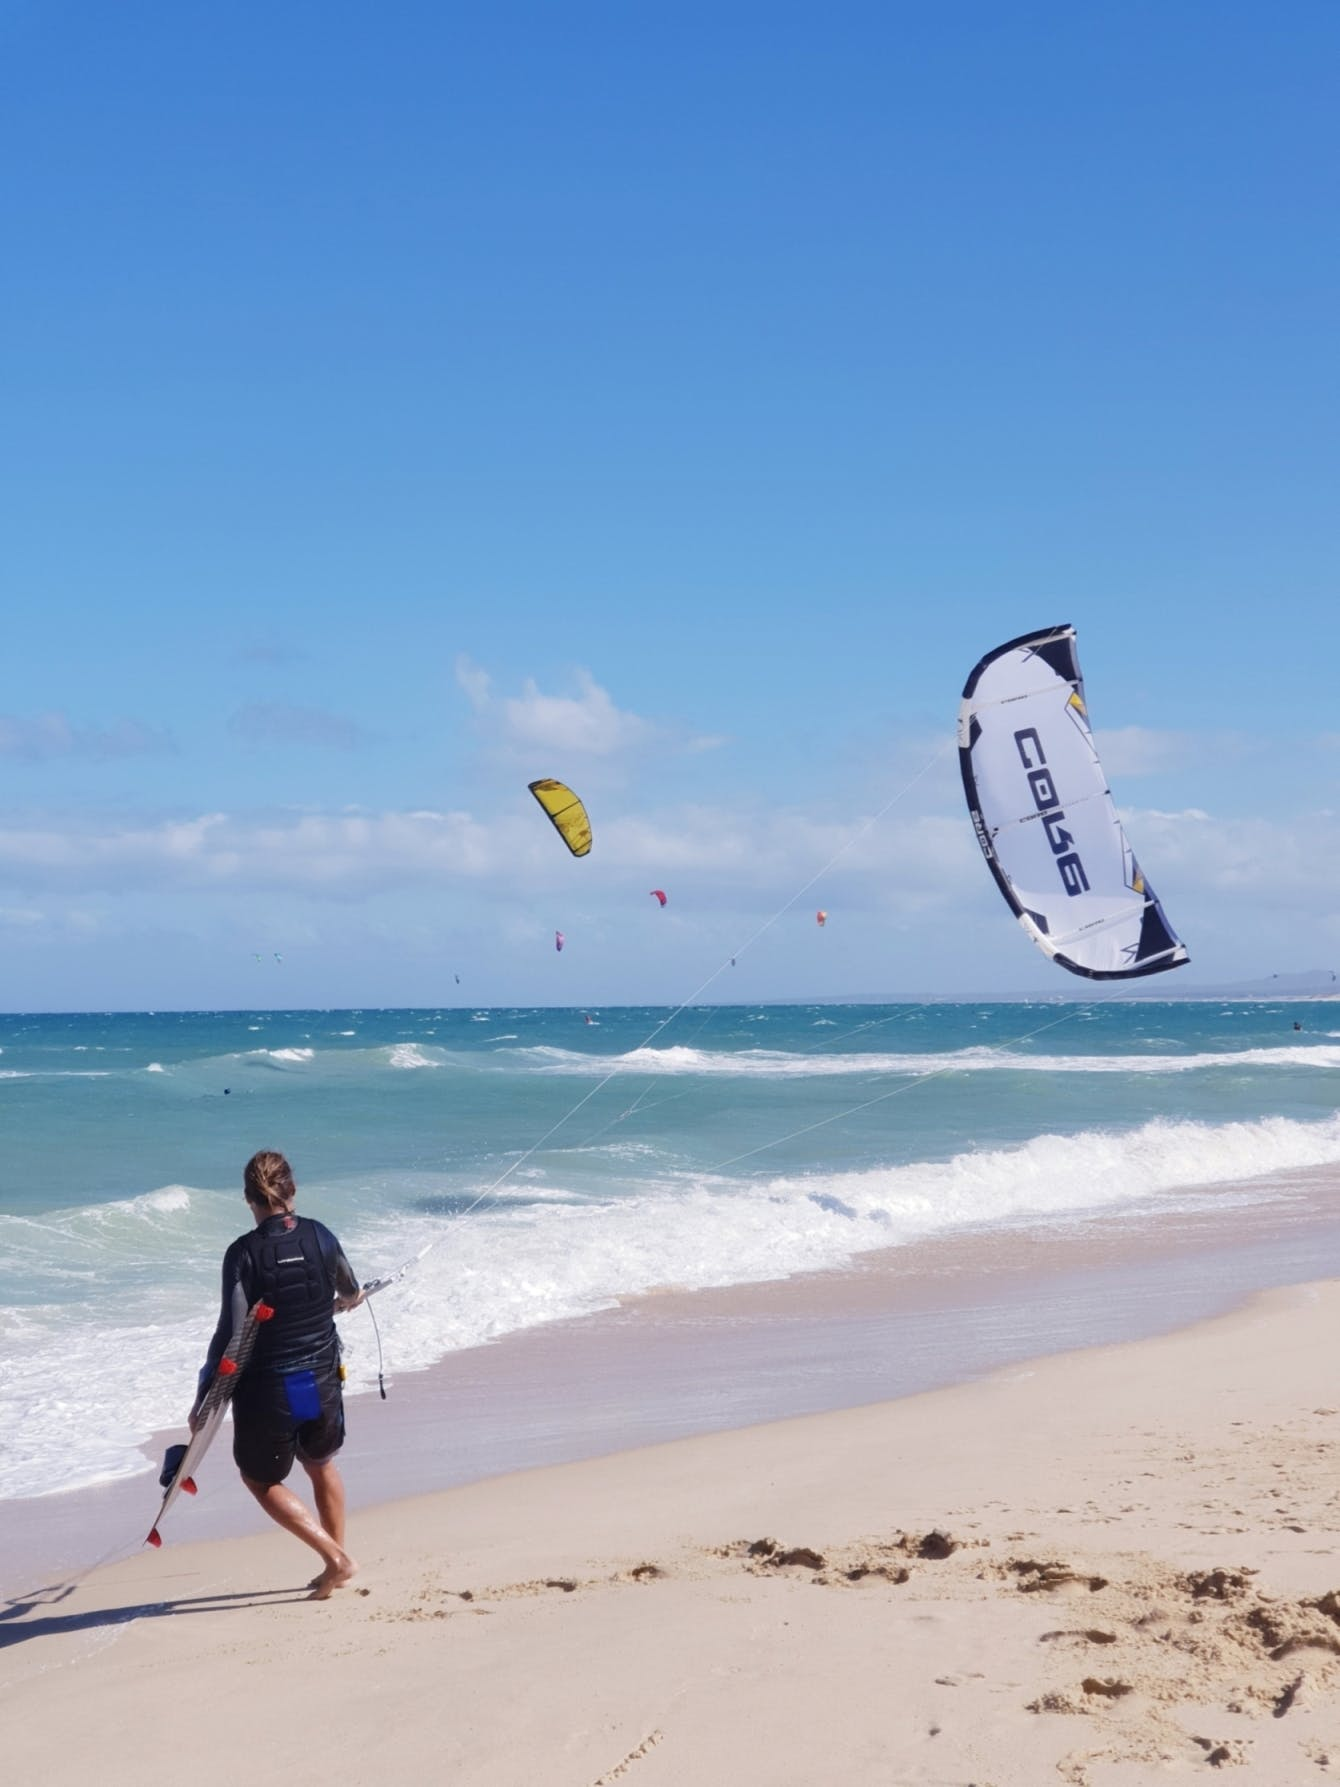 We have a kite gear rental - so if you are independent ride you can kiteboarding every day in La Ventana